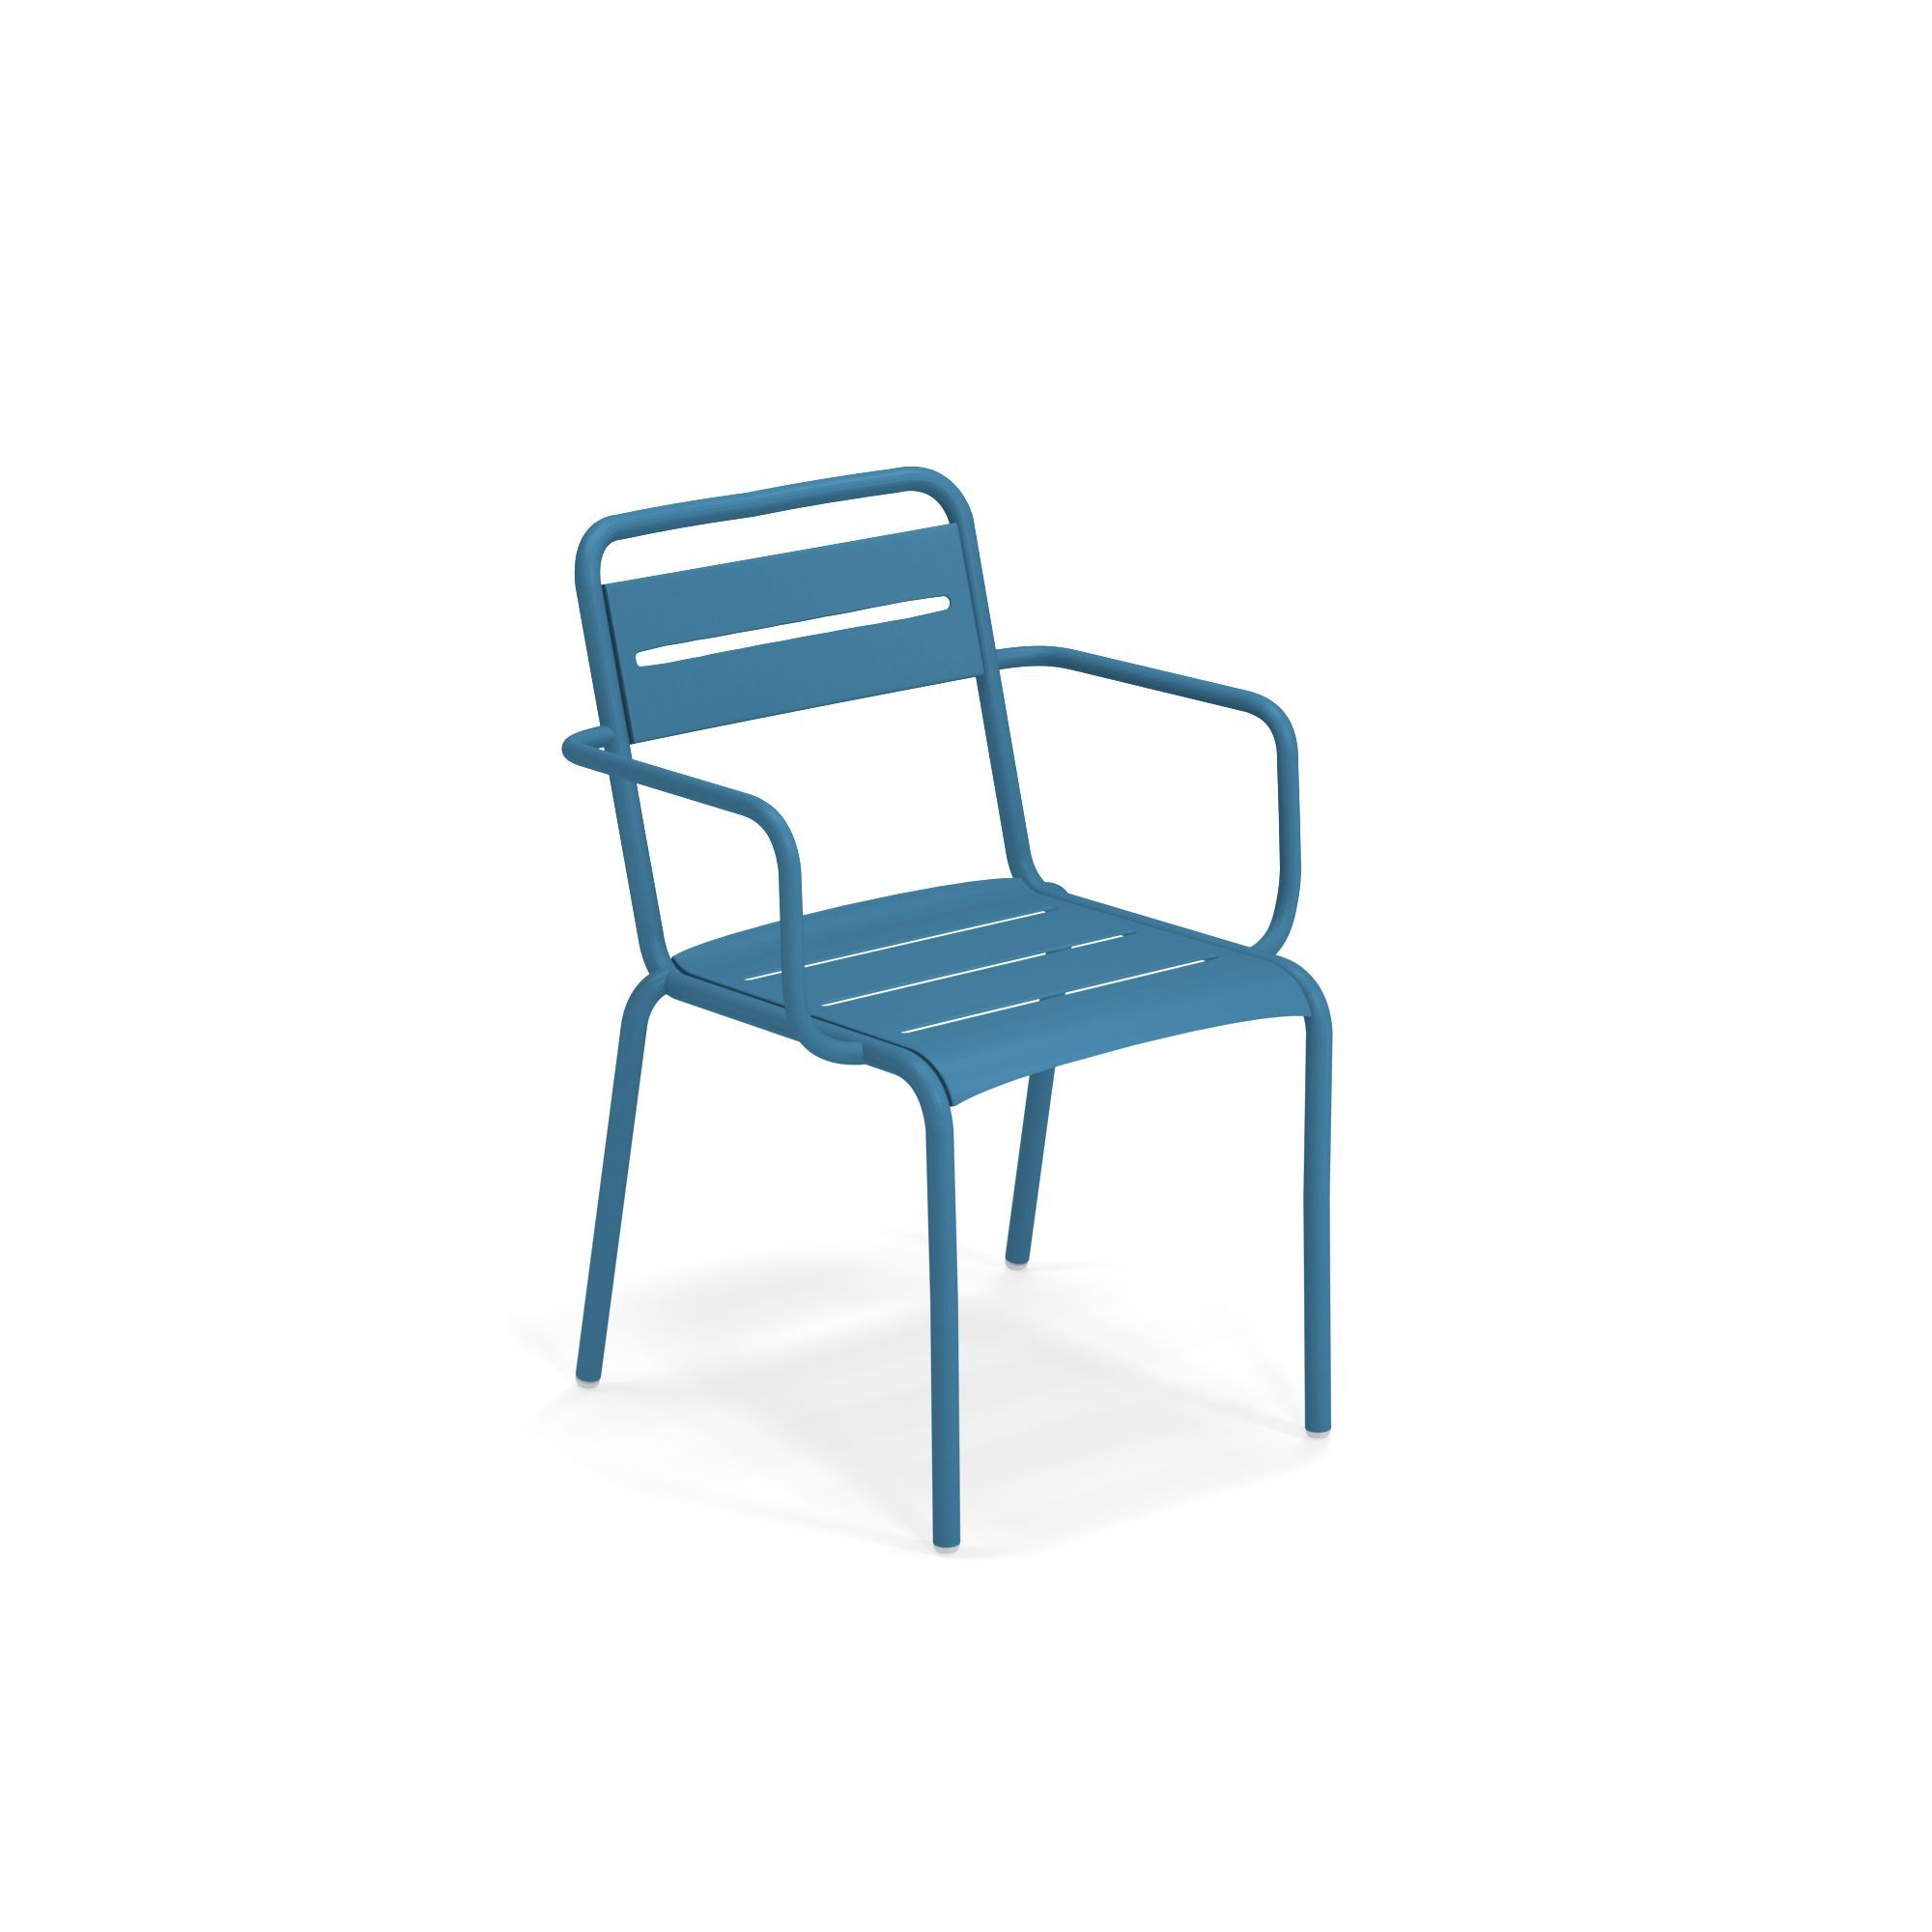 emuamericas, llc 162-61 chair, armchair, stacking, outdoor